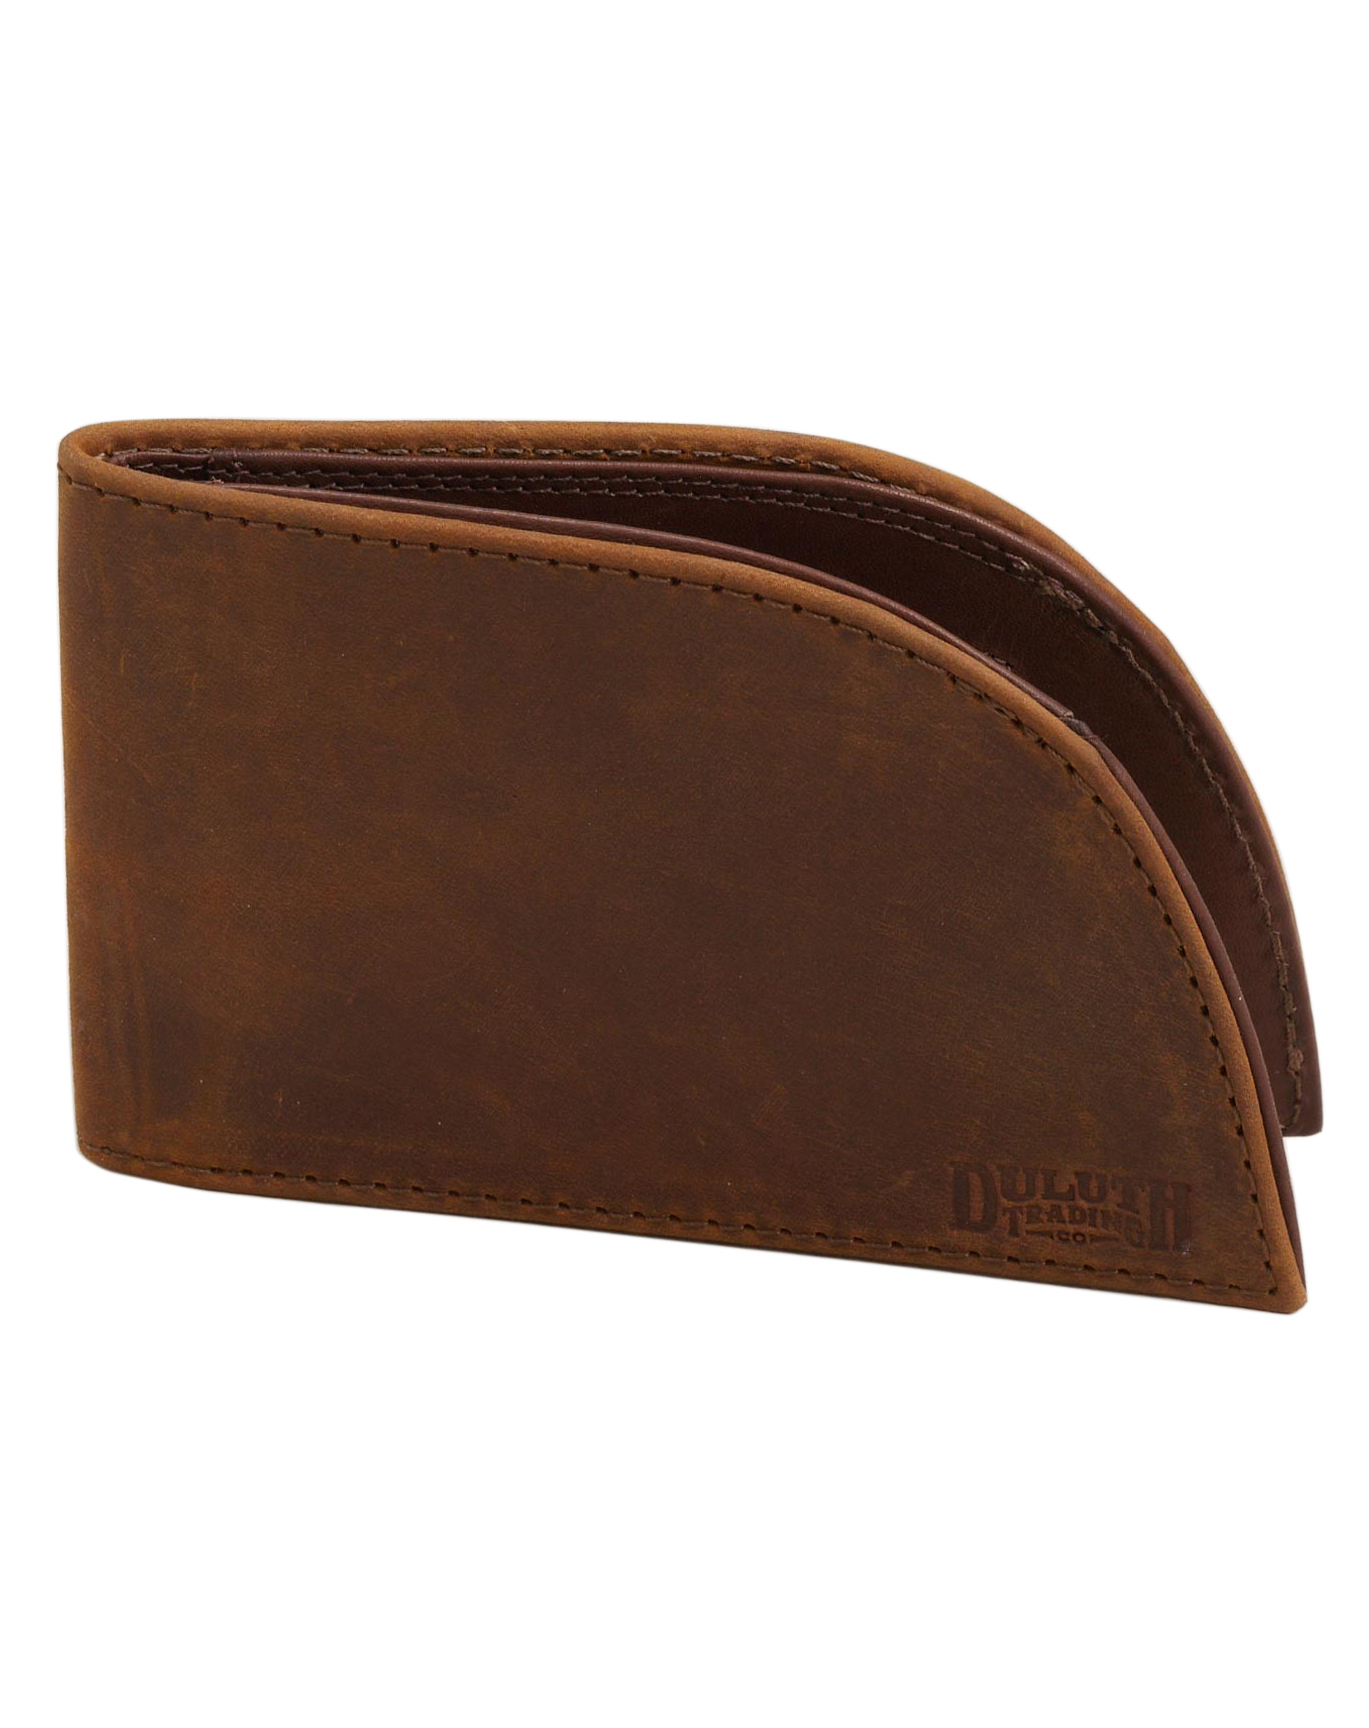 Men's Rogue front pocket wallet